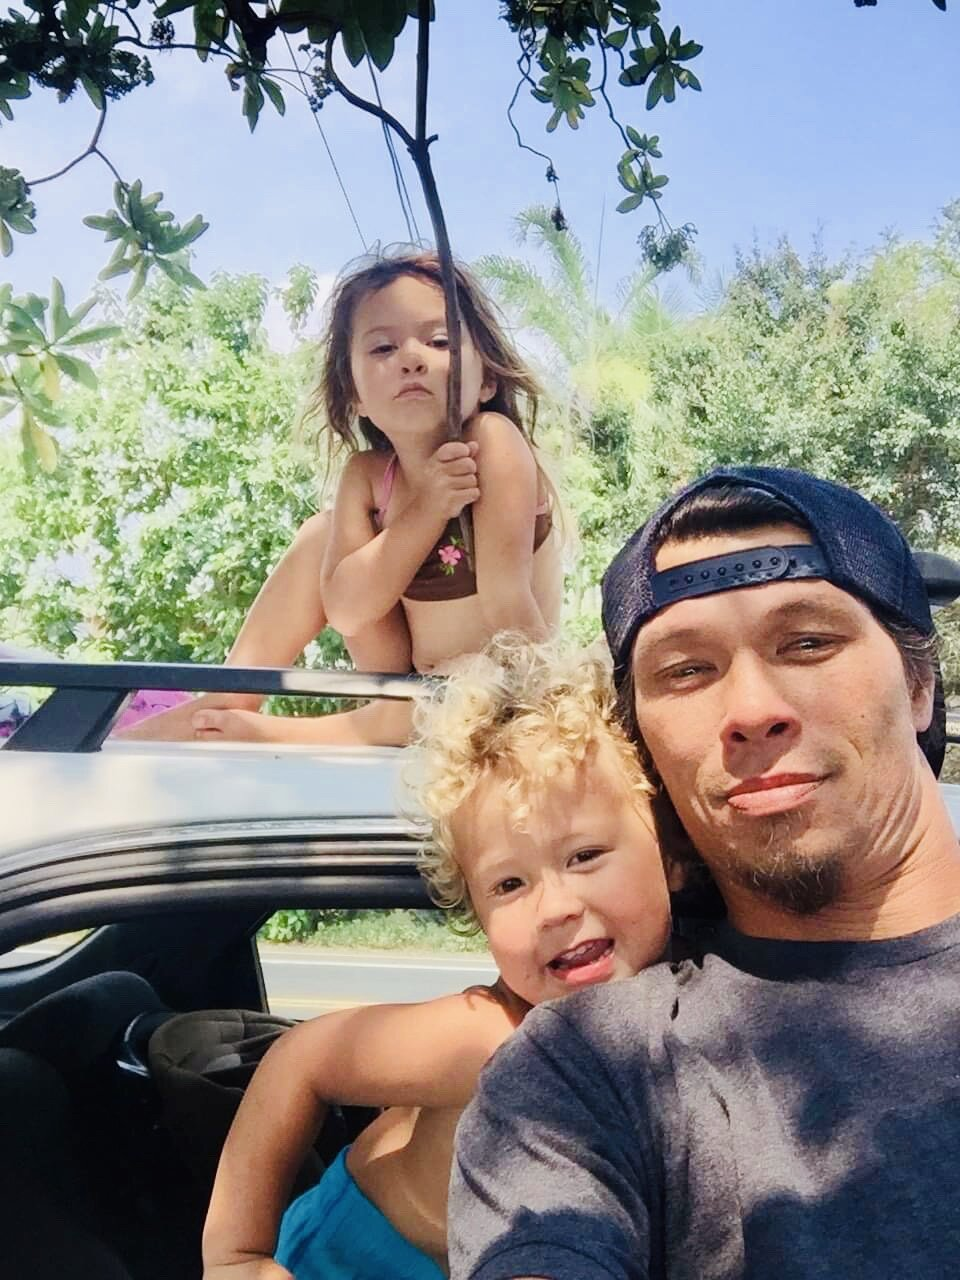 Gavin, Keikilani, Kaikoa - An awesome Ohana these guys live the waterman lifestyle.